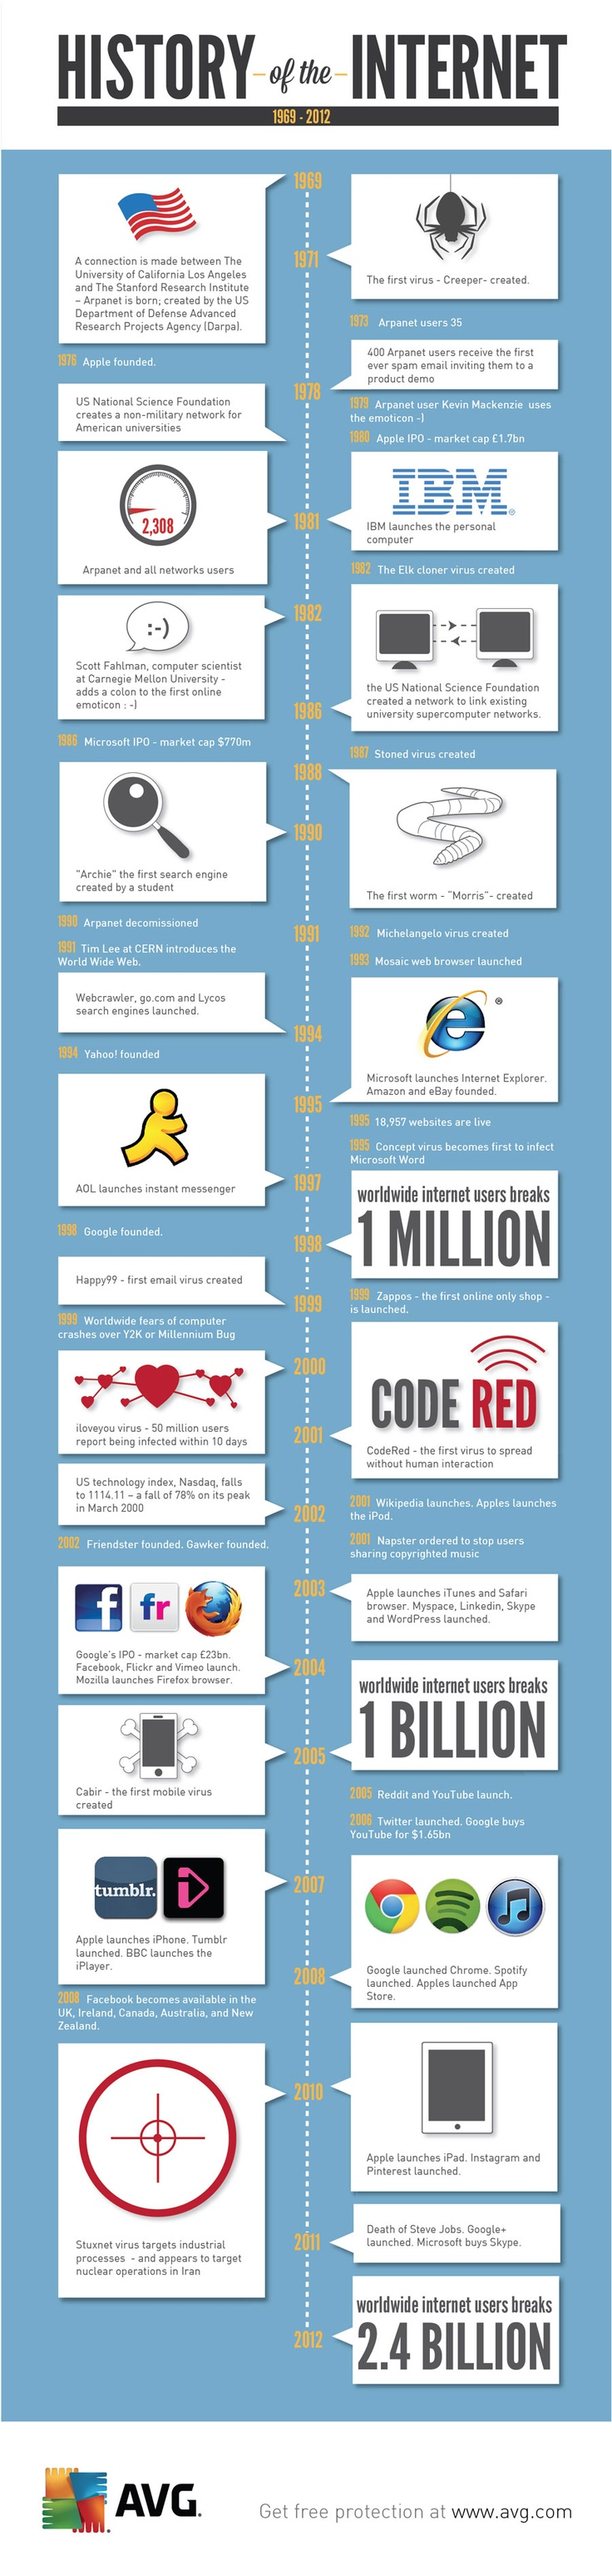 The History of the Internet. Great infographic.